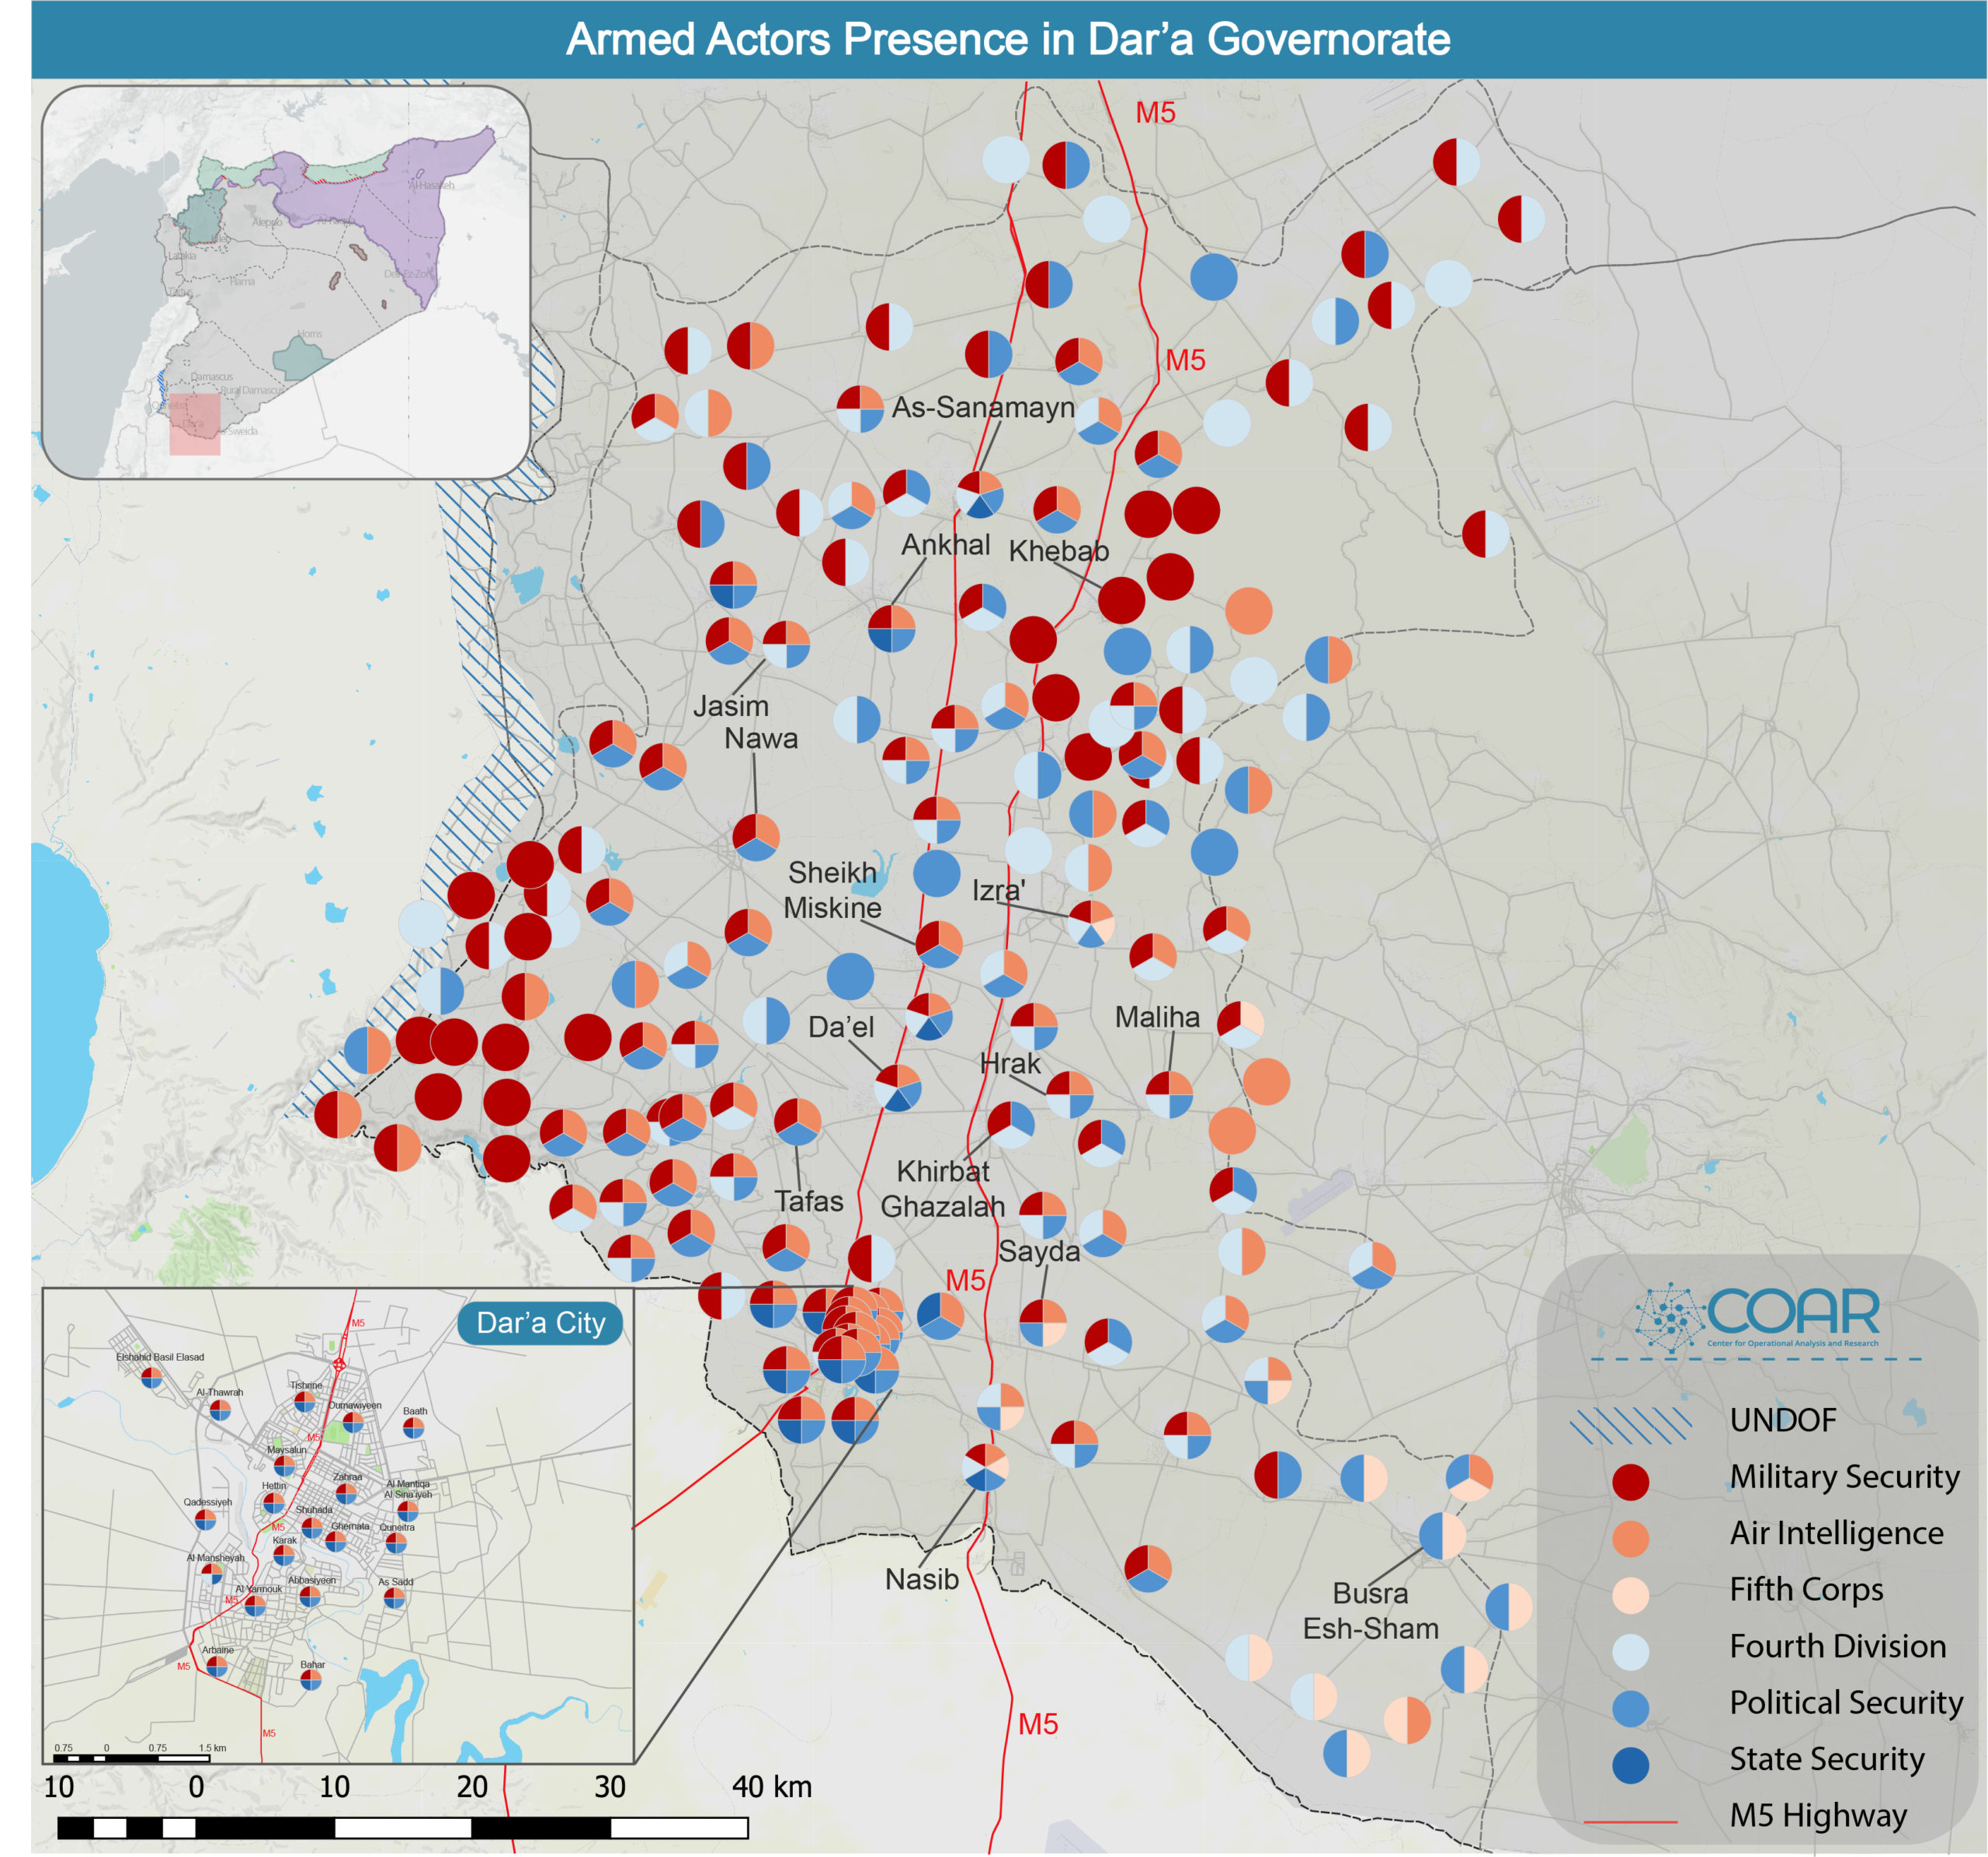 Security Archipelago: Security Fragmentation in Dar'a Governorate